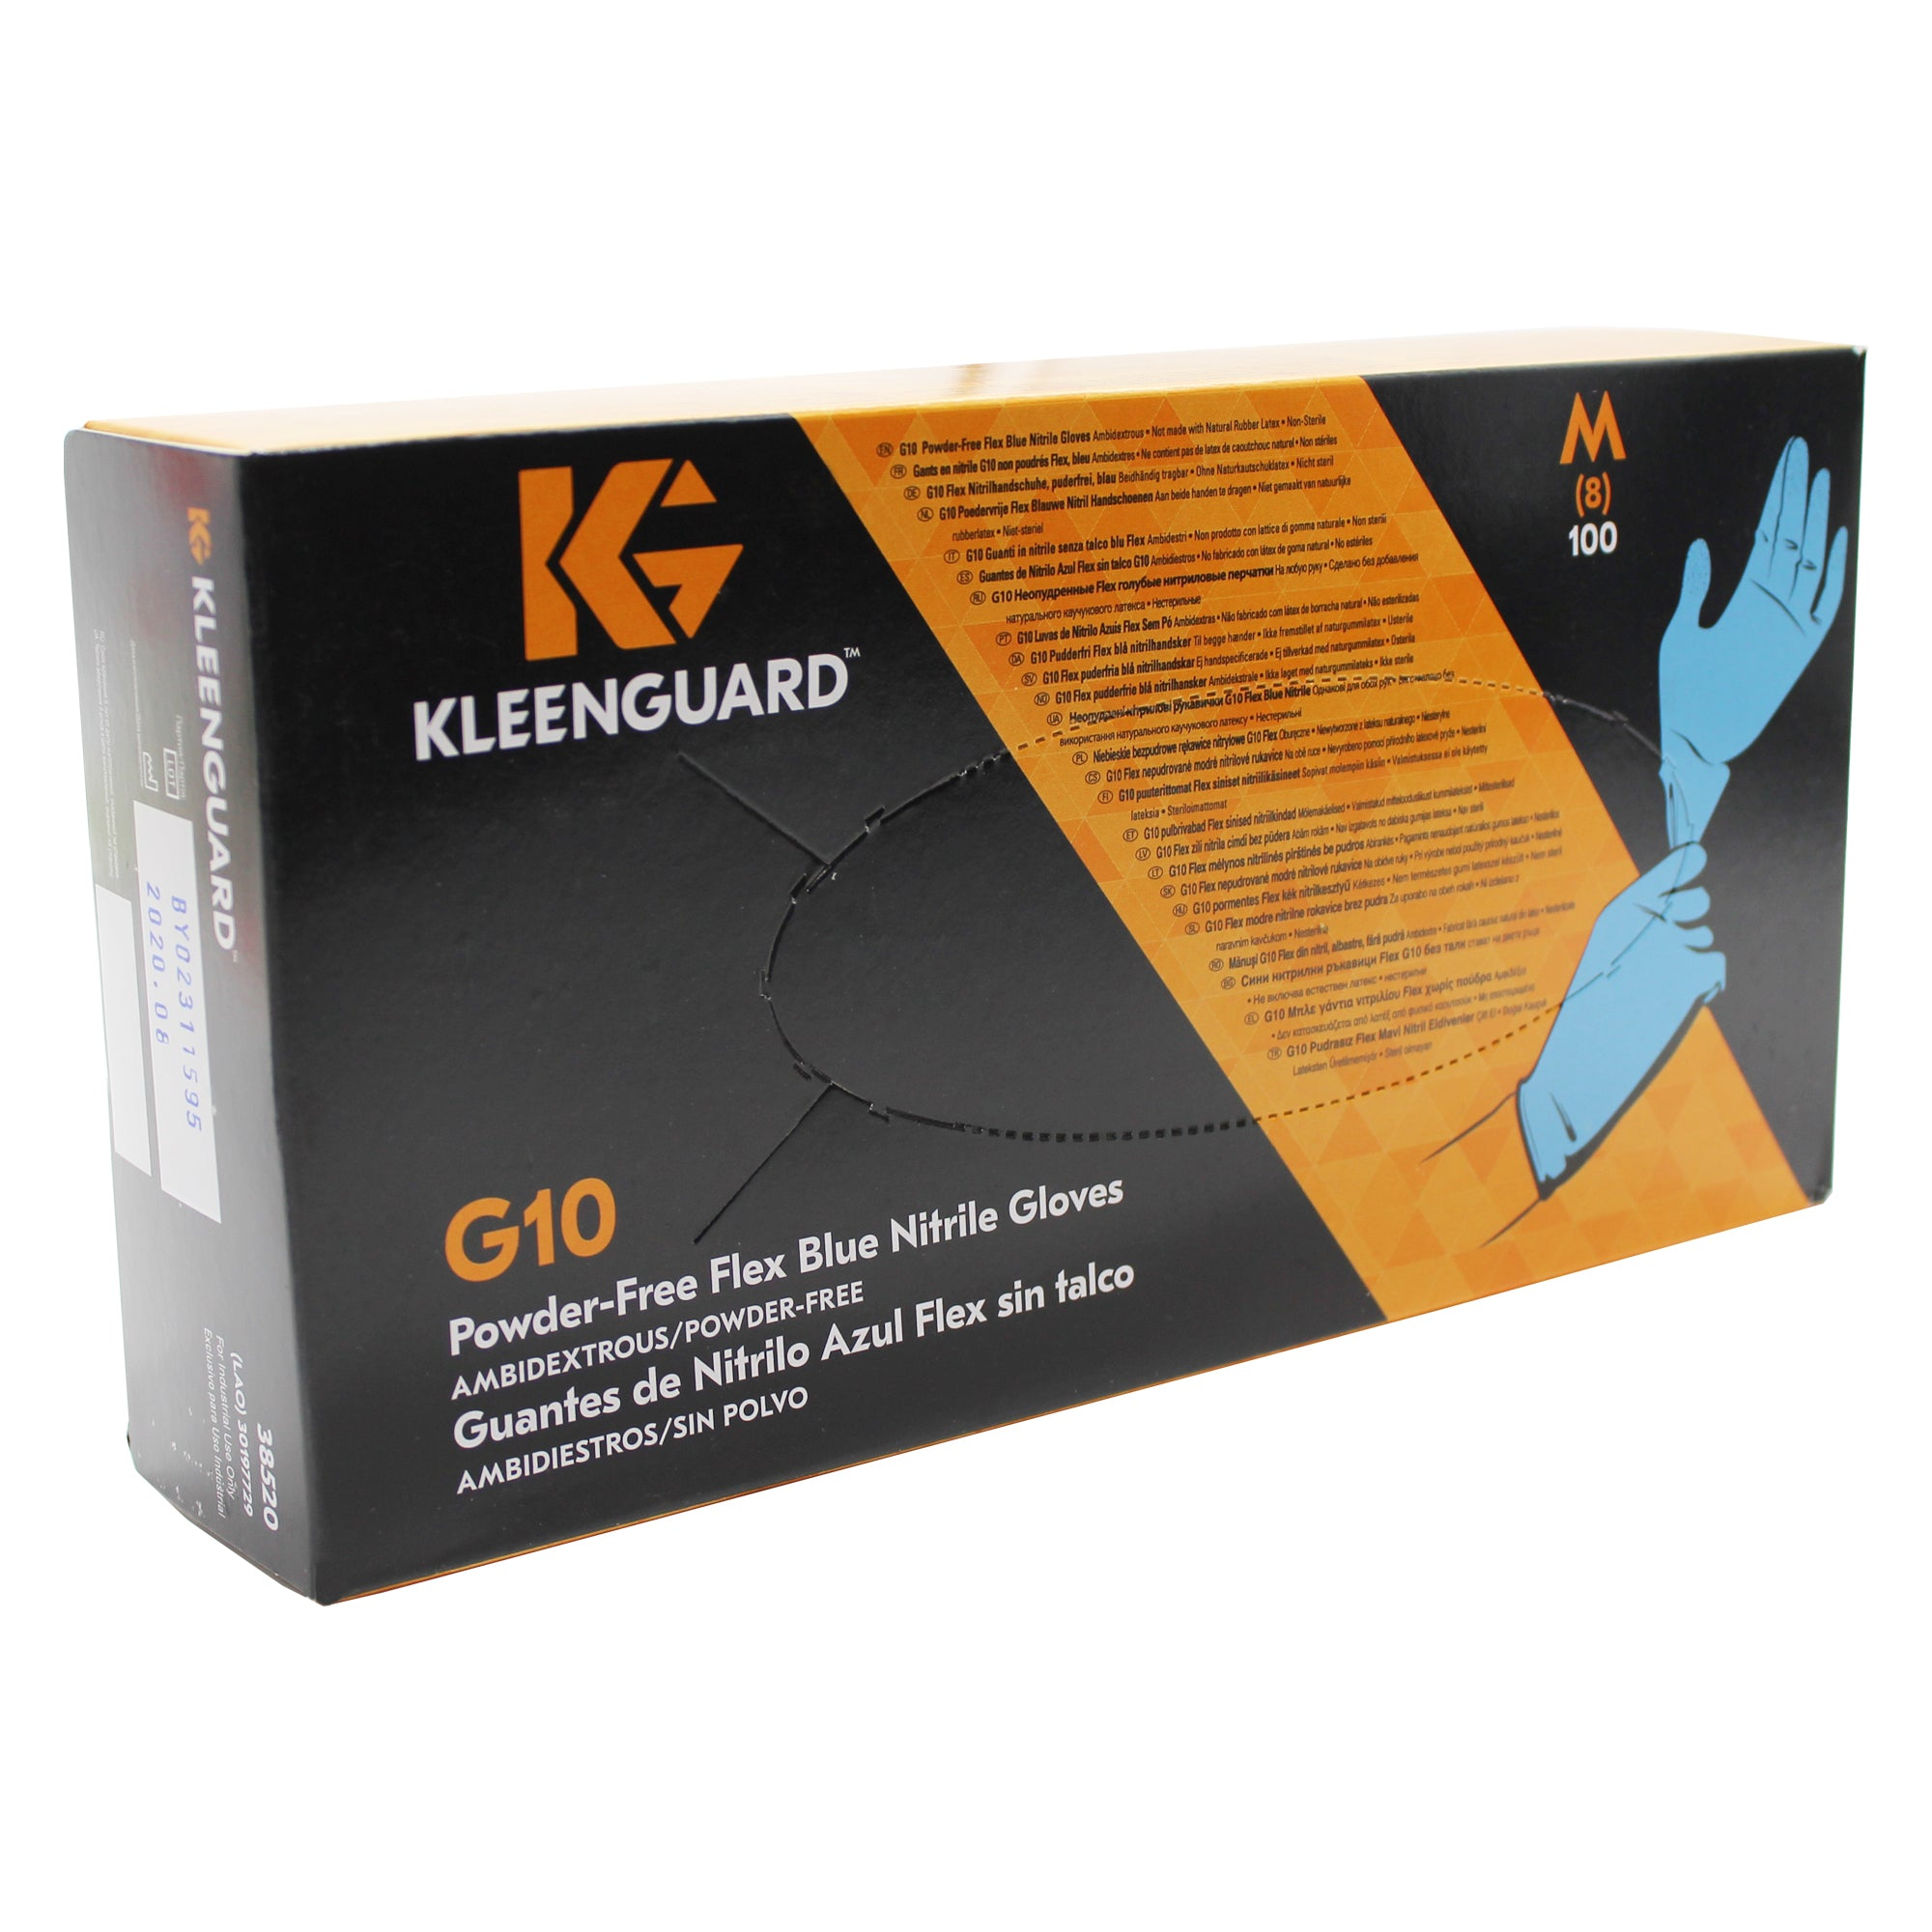 Nitrile Gloves KleenGuard Box of 100 Medium Size